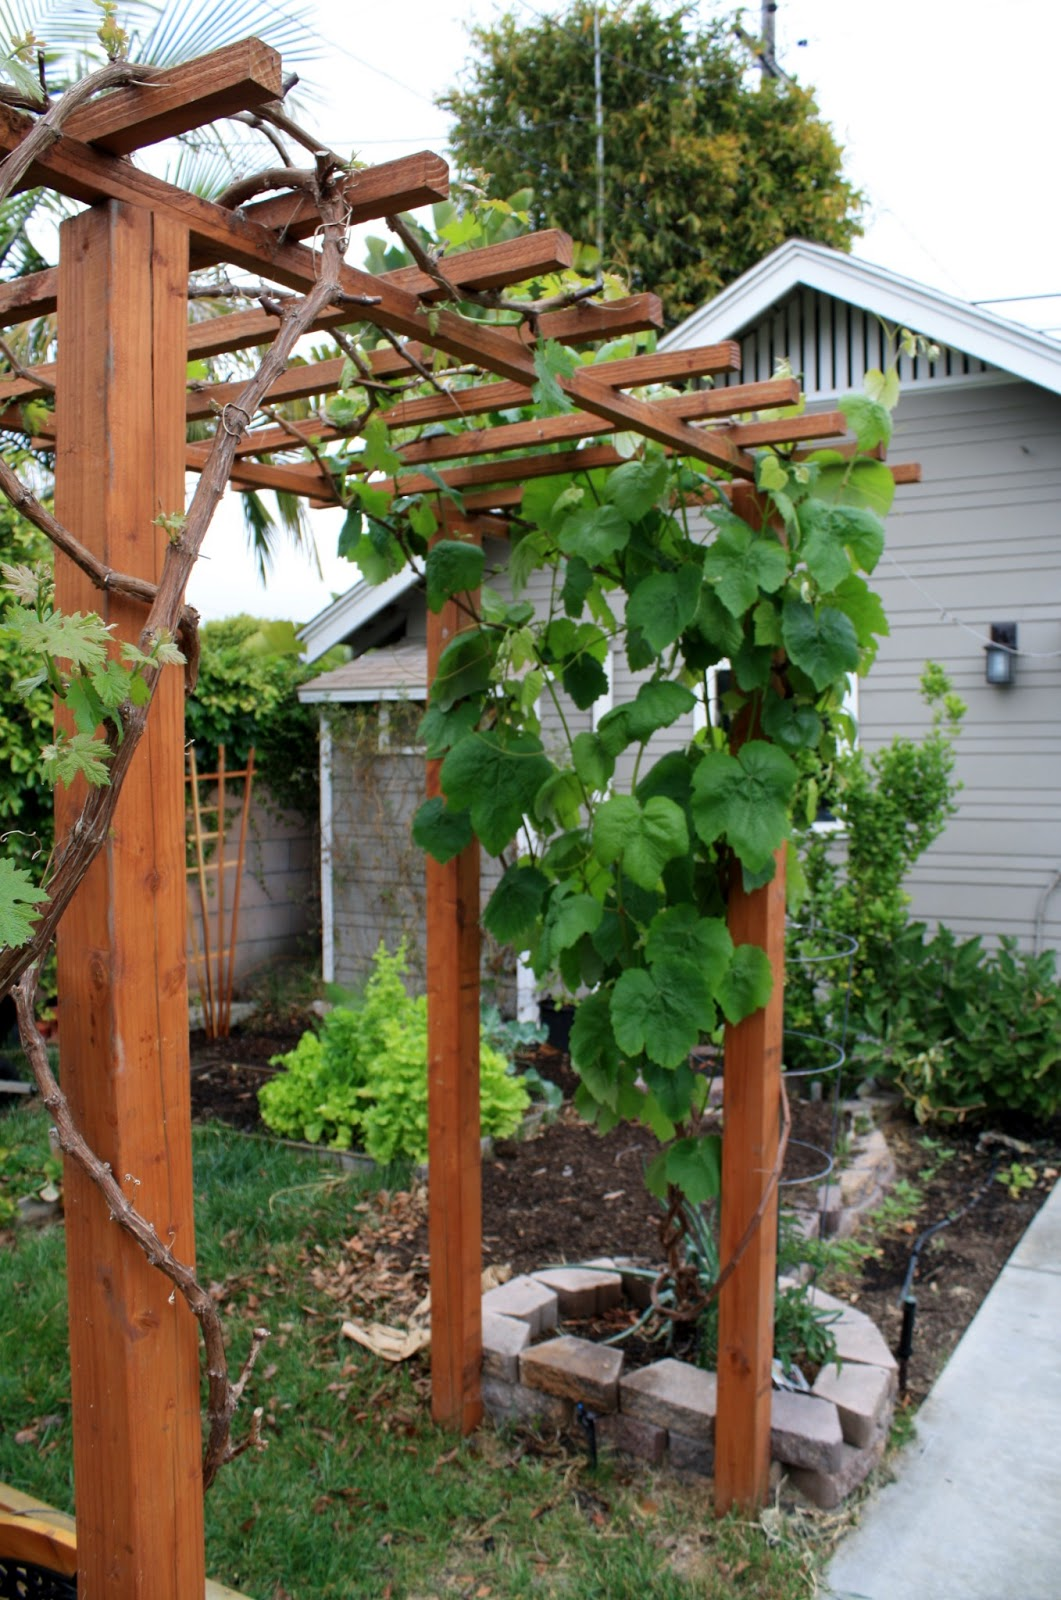 bench under the grape arbor